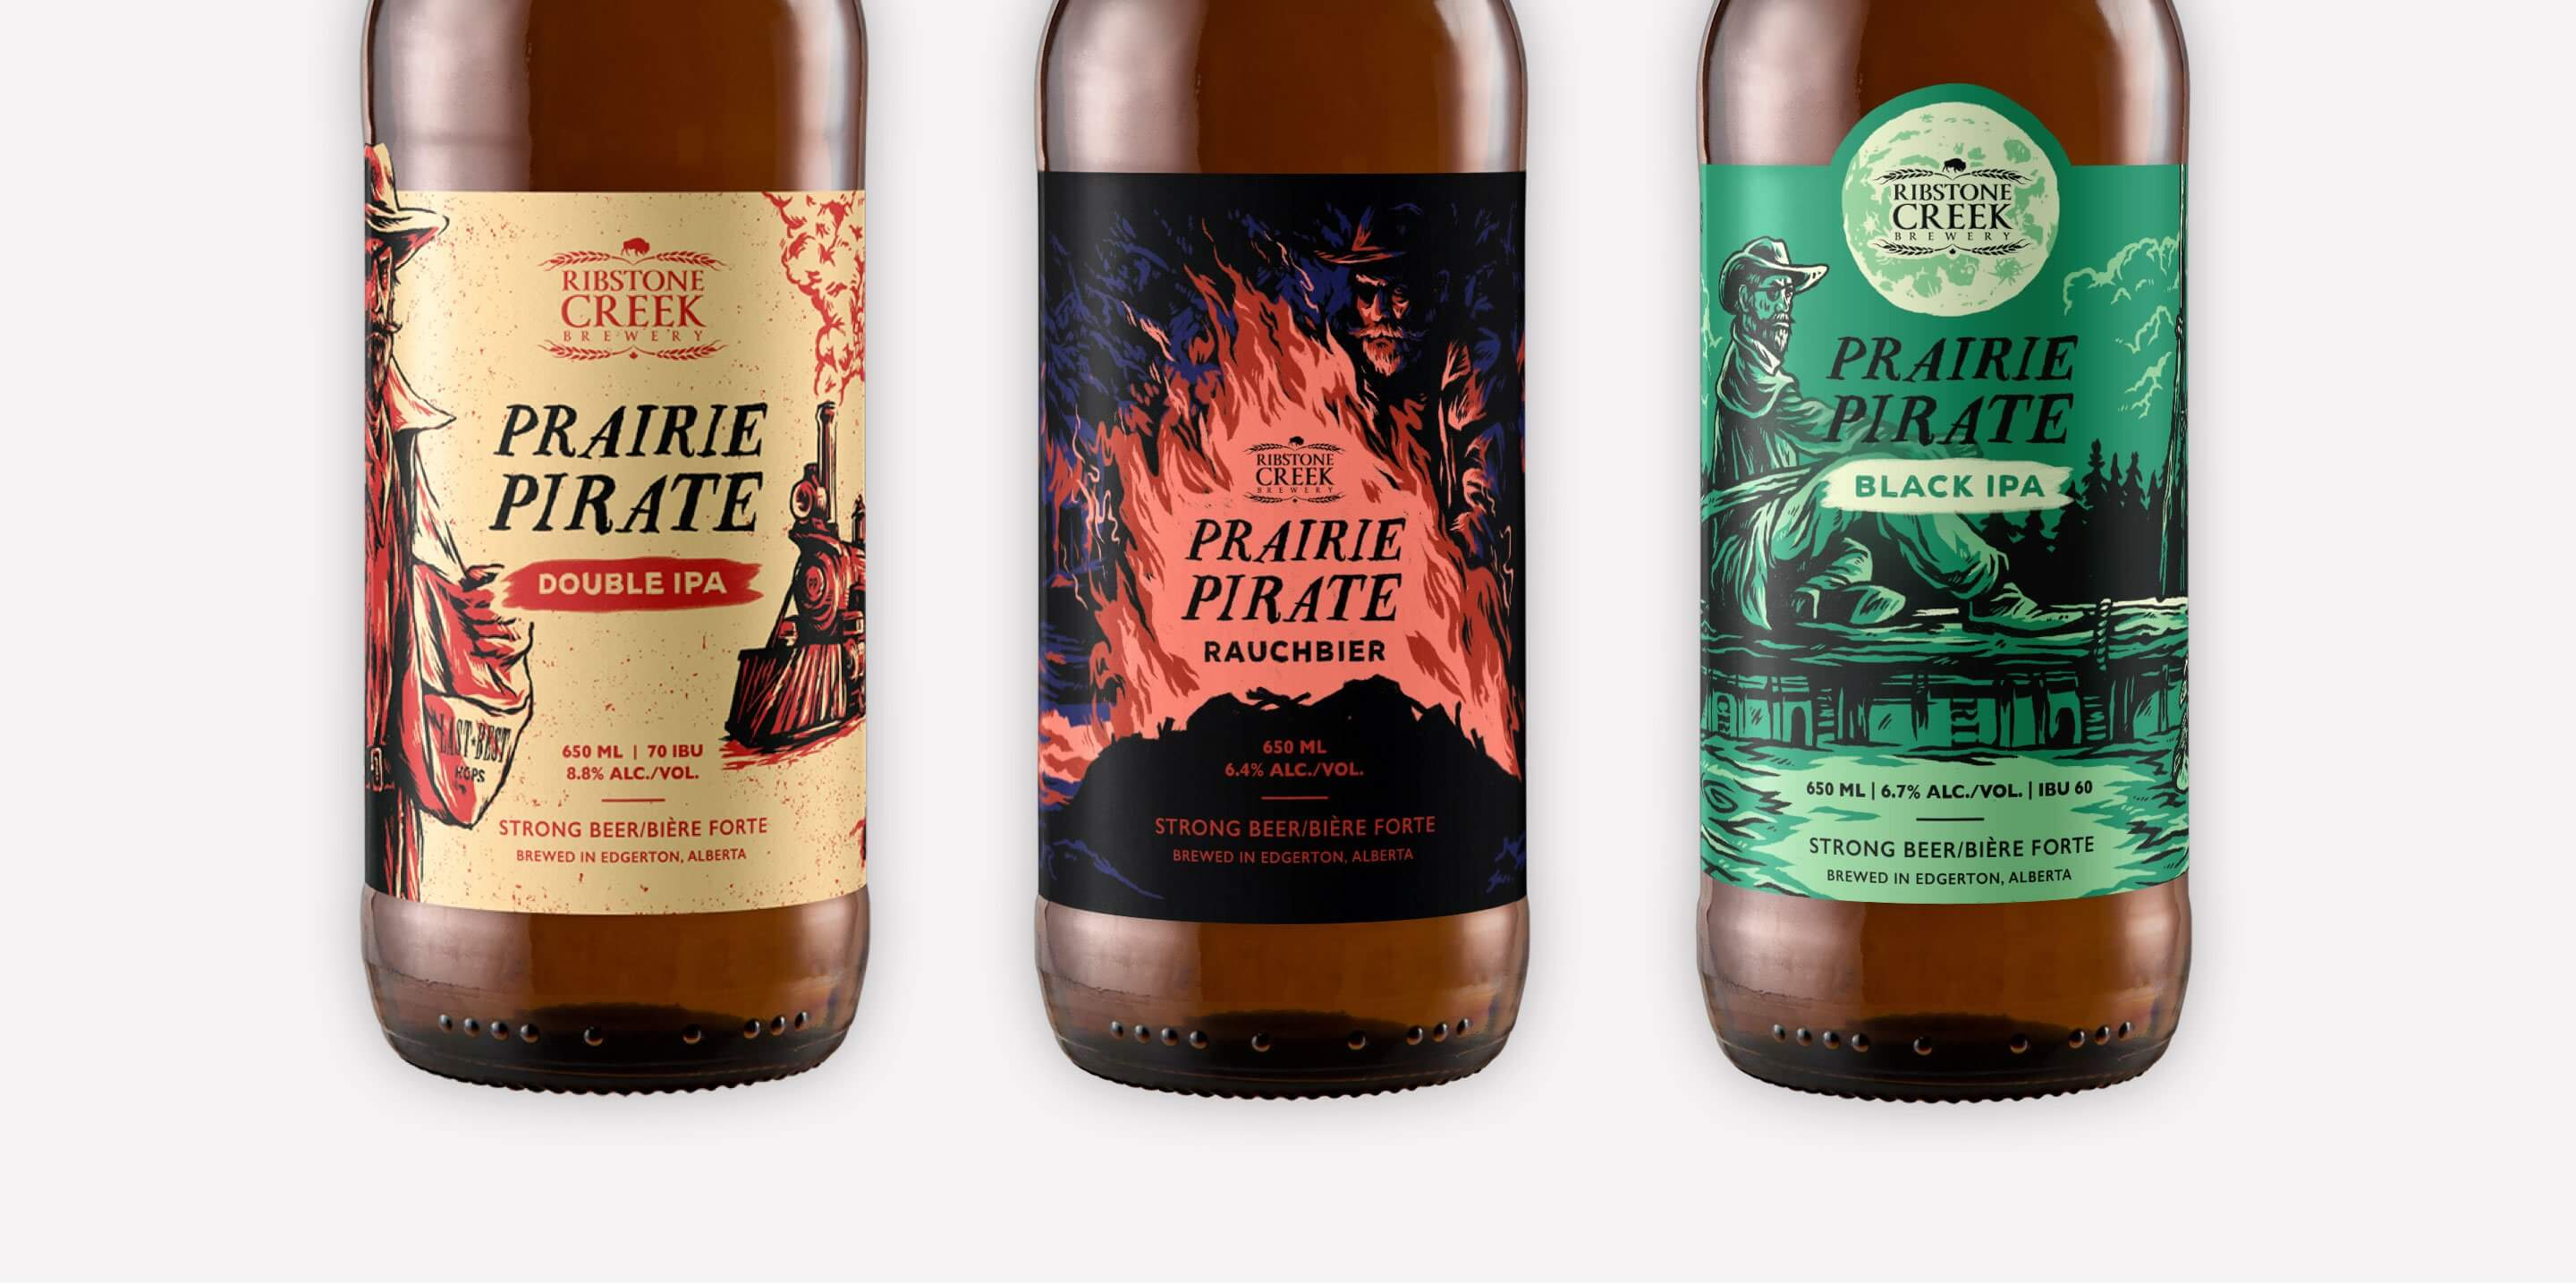 Prairie pirate beer label illustration series